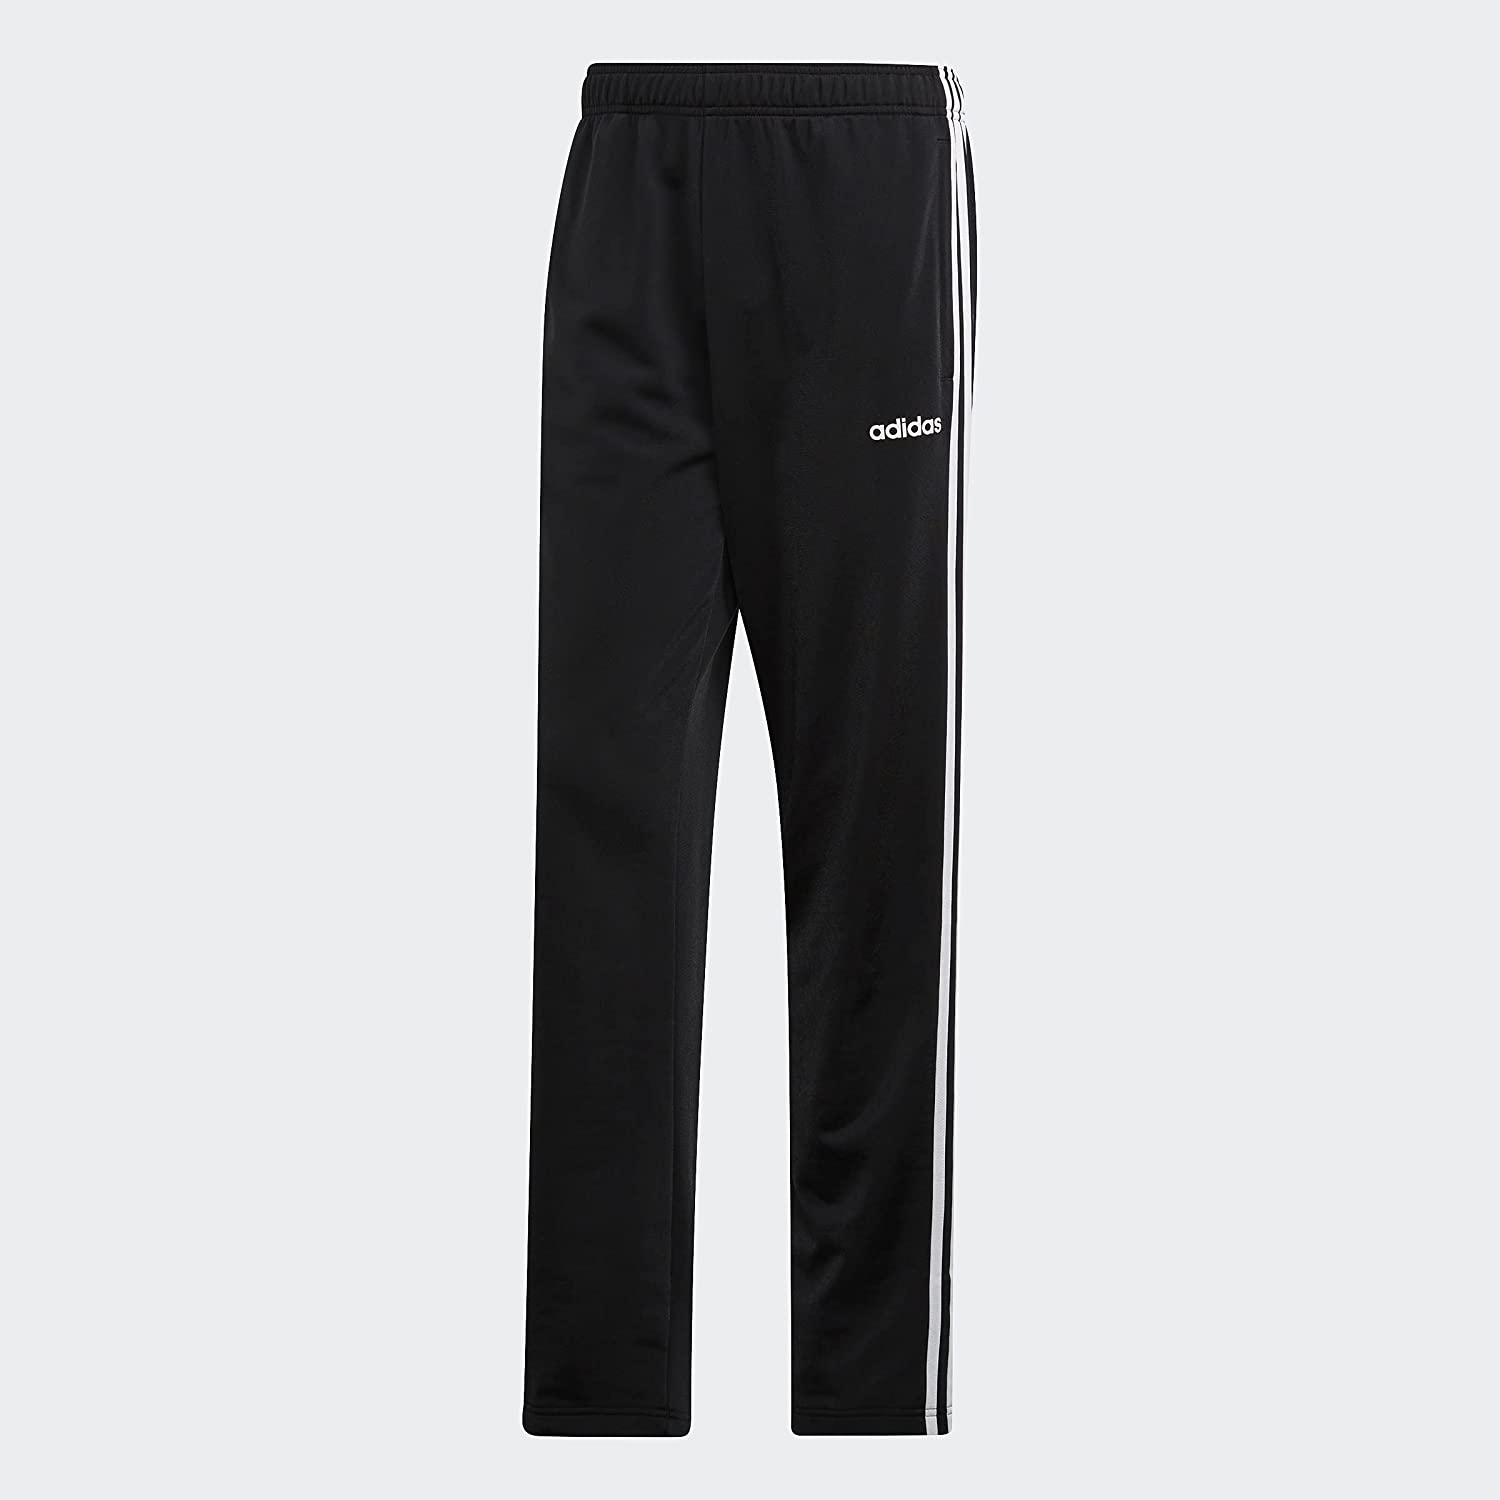 adidas mens Max 56% OFF 3-stripes Courier shipping free Pants